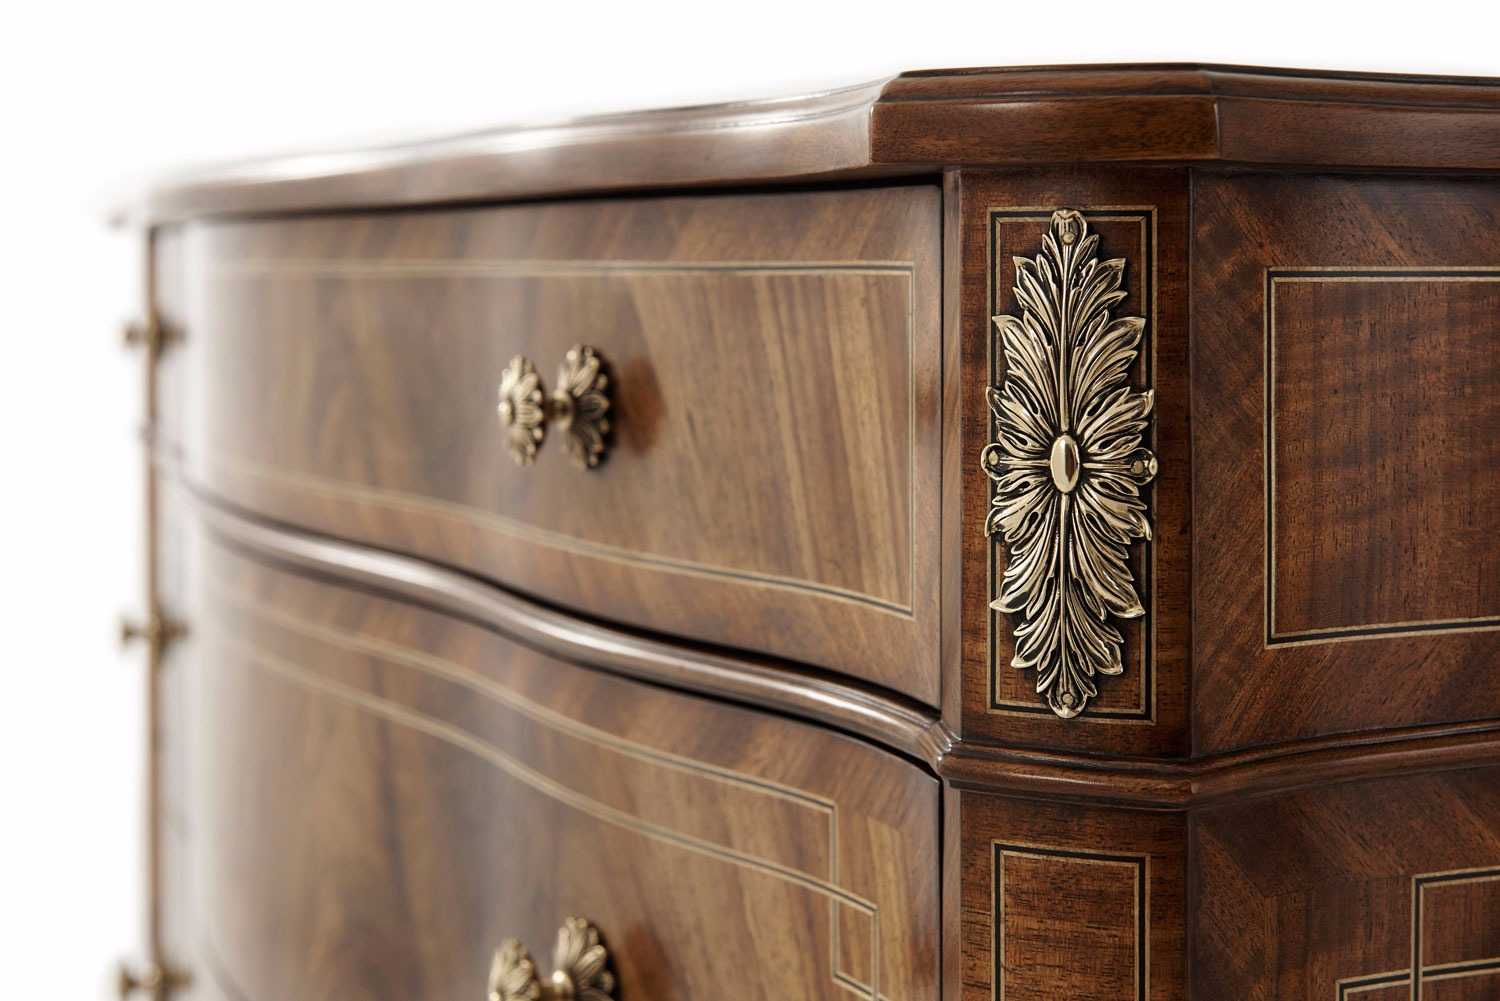 A Noix finish flame Etimoe veneered chest of drawers